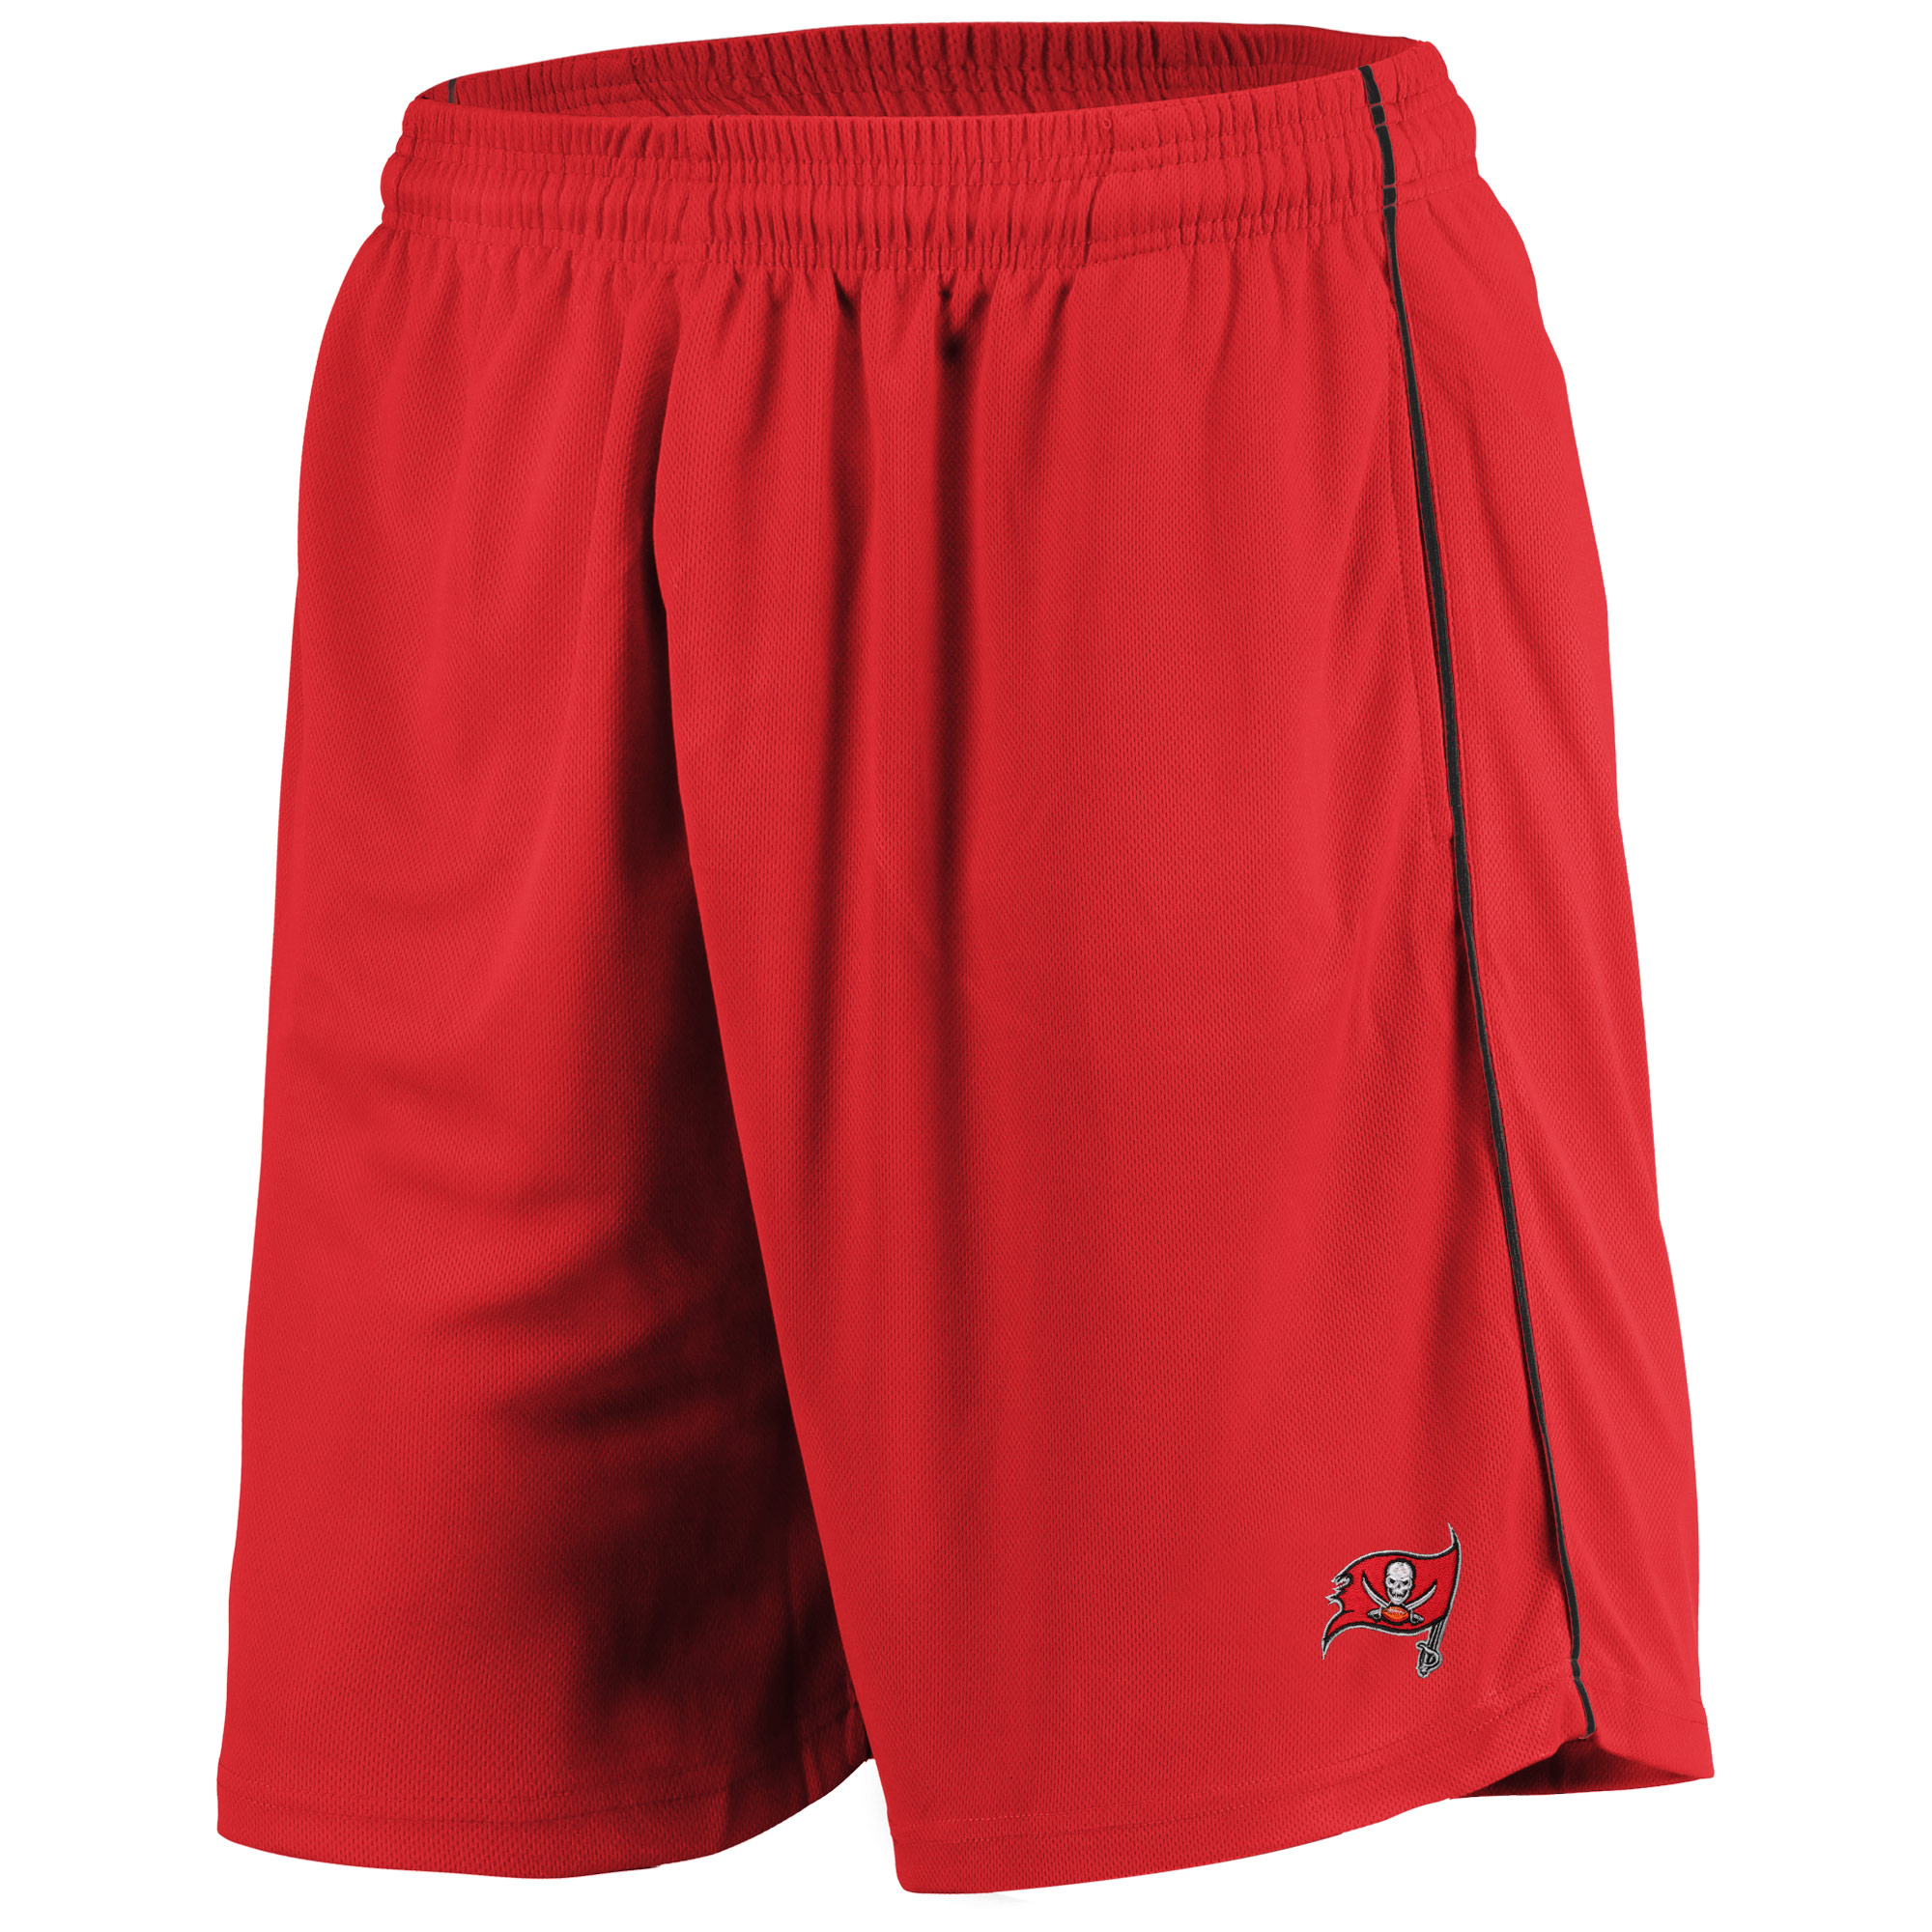 Men's Majestic Red Tampa Bay Buccaneers Mesh Shorts